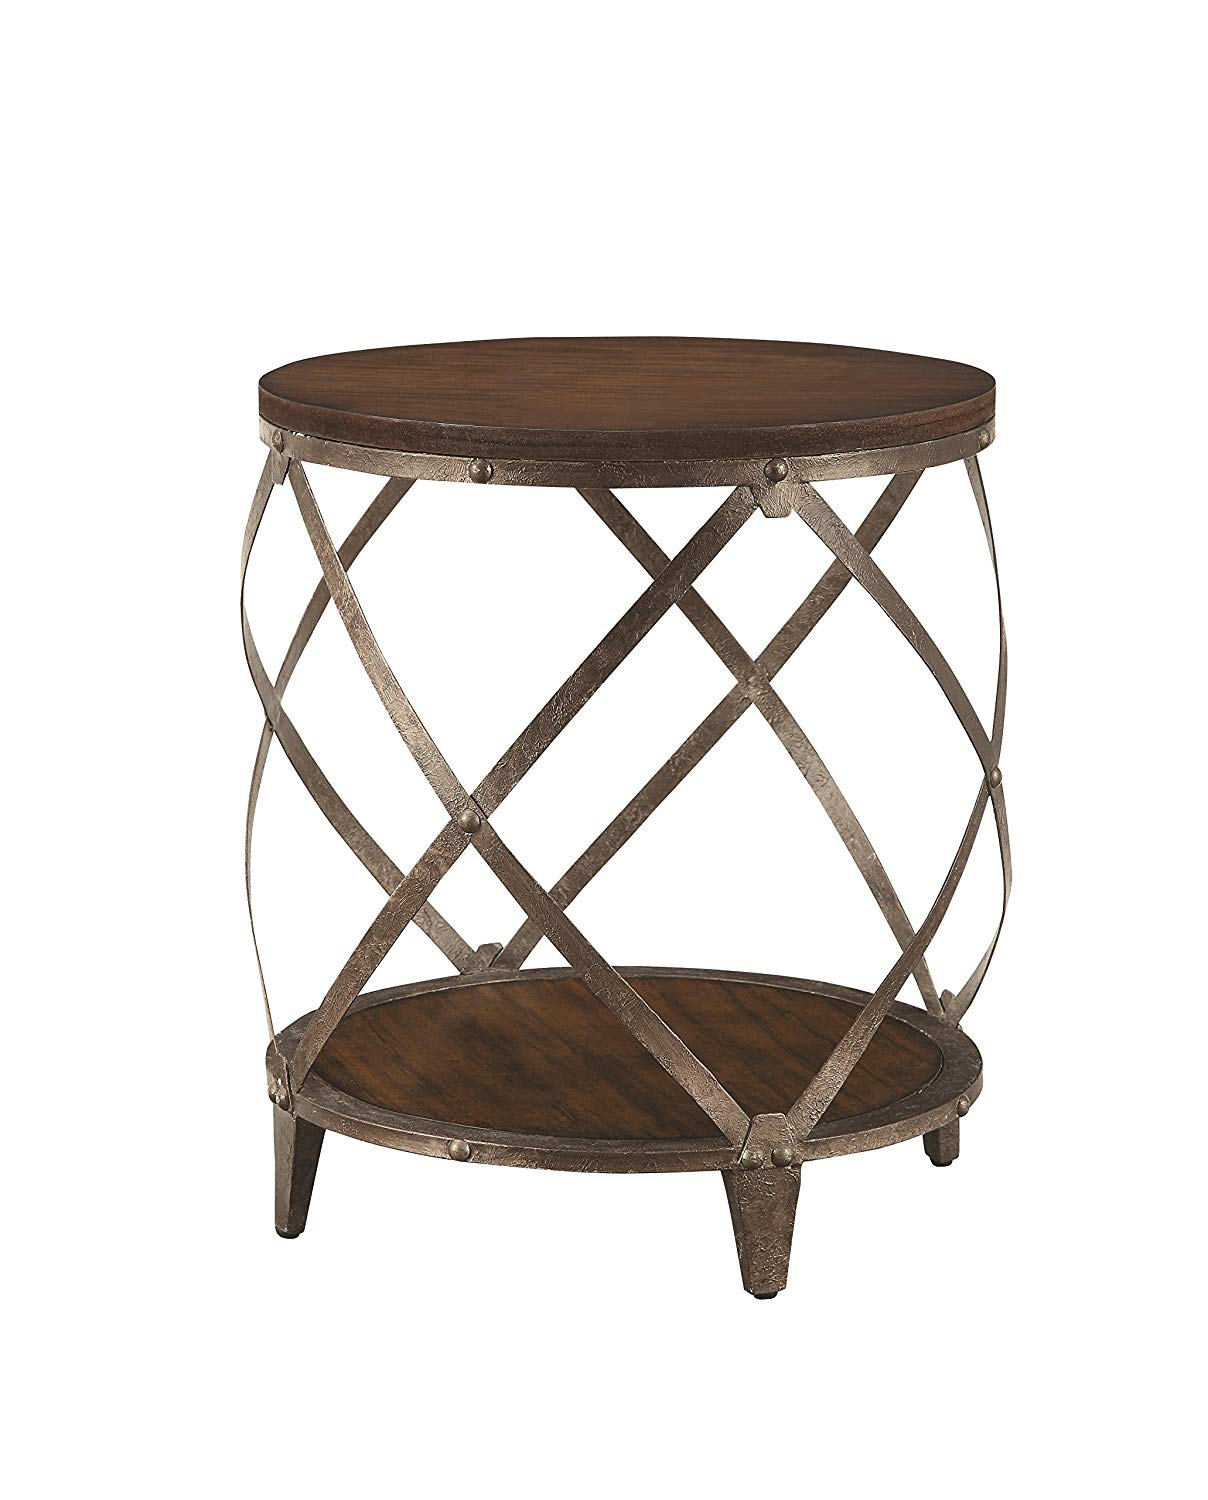 metal accent table with drum shape brown kitchen dining outdoor furniture seat covers industrial bedside faux marble modern lamps for living room battery powered light white round